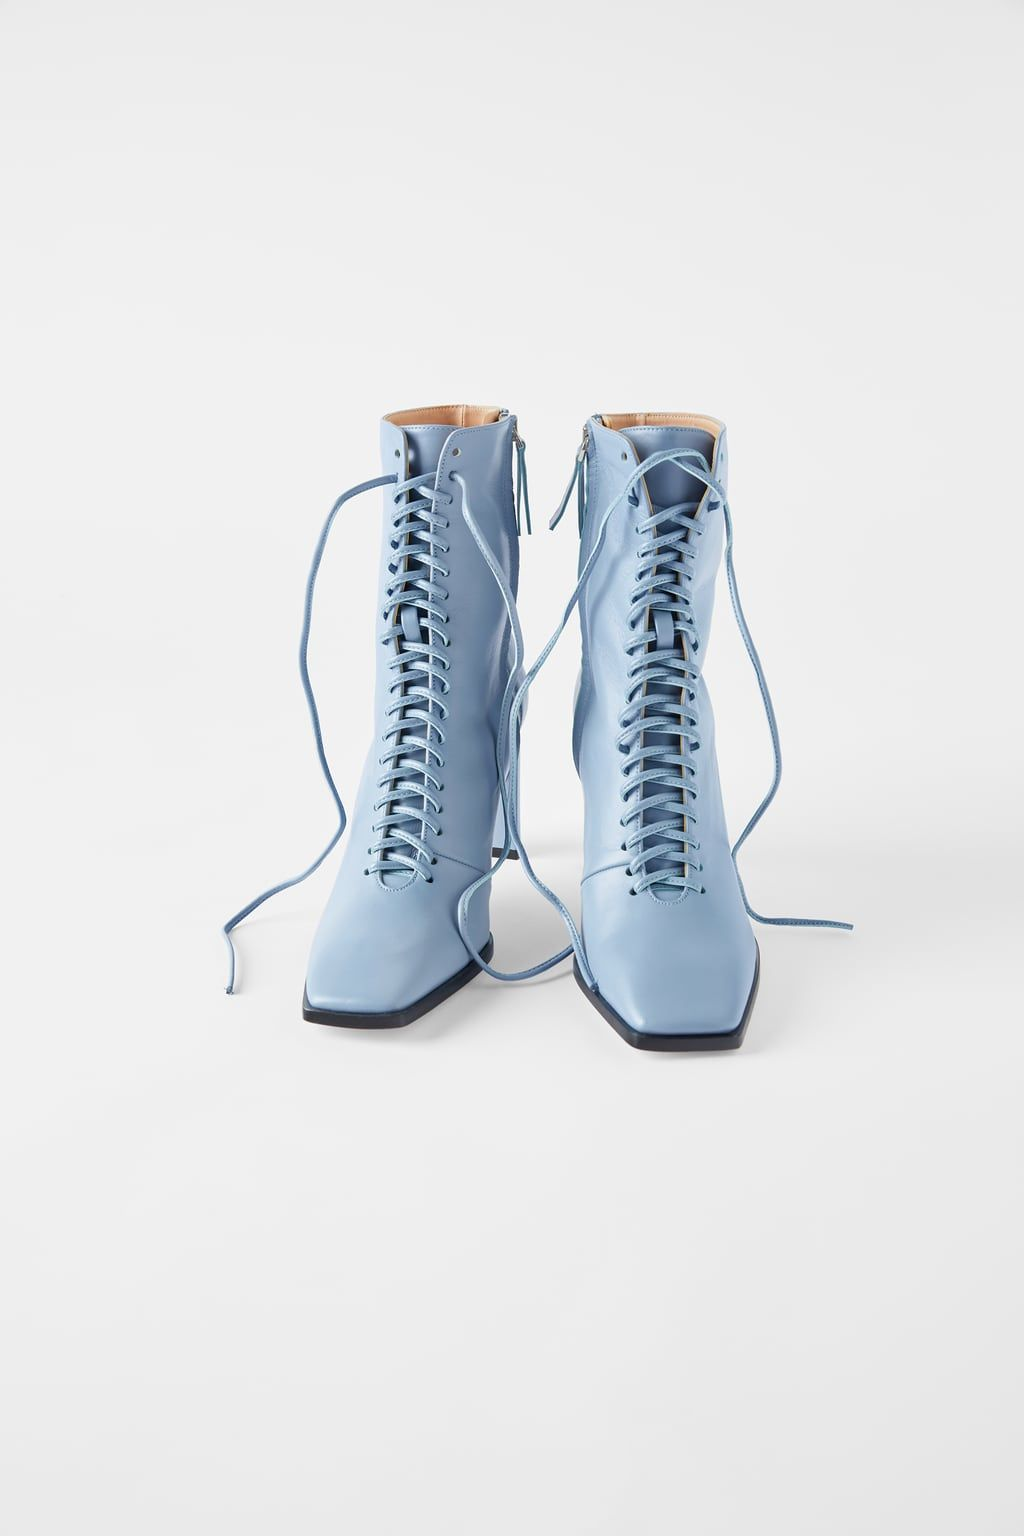 Zara sell-out autumn boots - Perfect